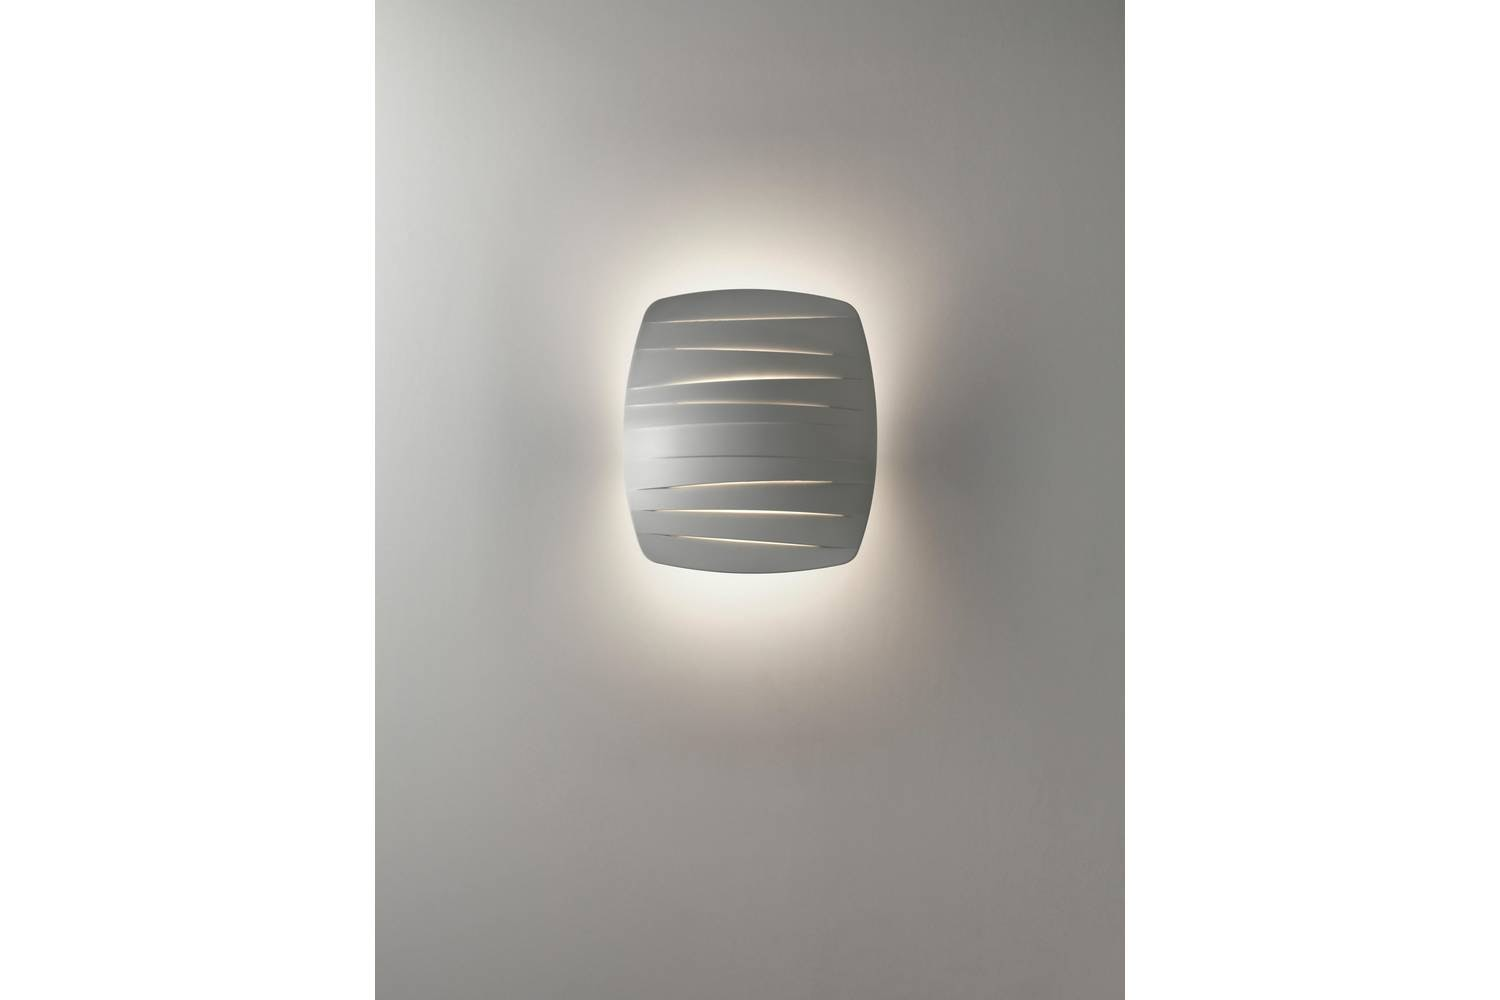 Flip LED Wall Lamp by Simon Pengelly for Foscarini